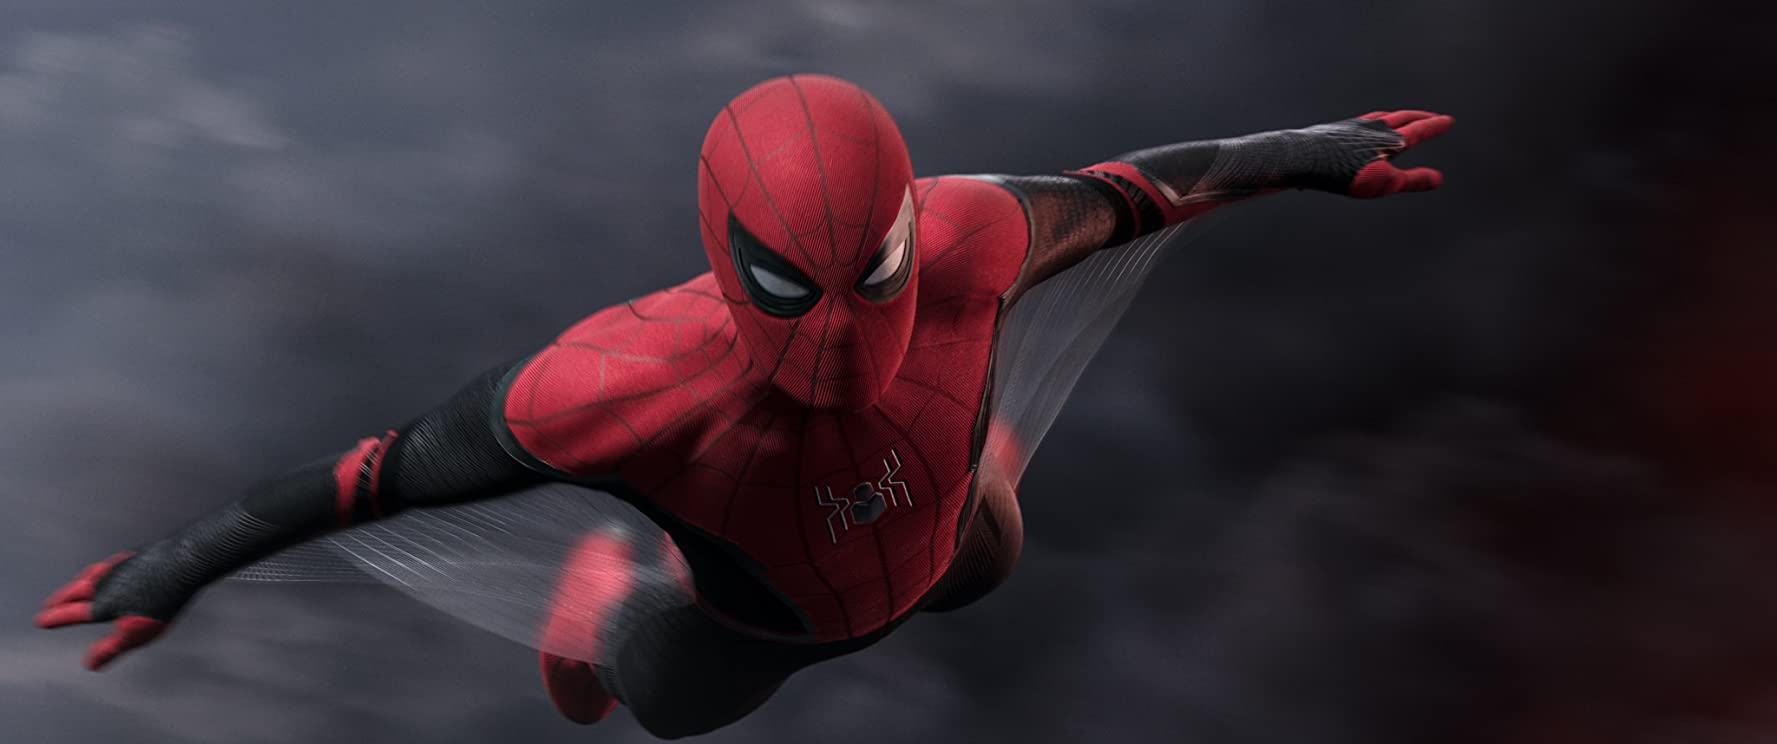 Tom Holland in Spider-Man: Far From Home (2019)